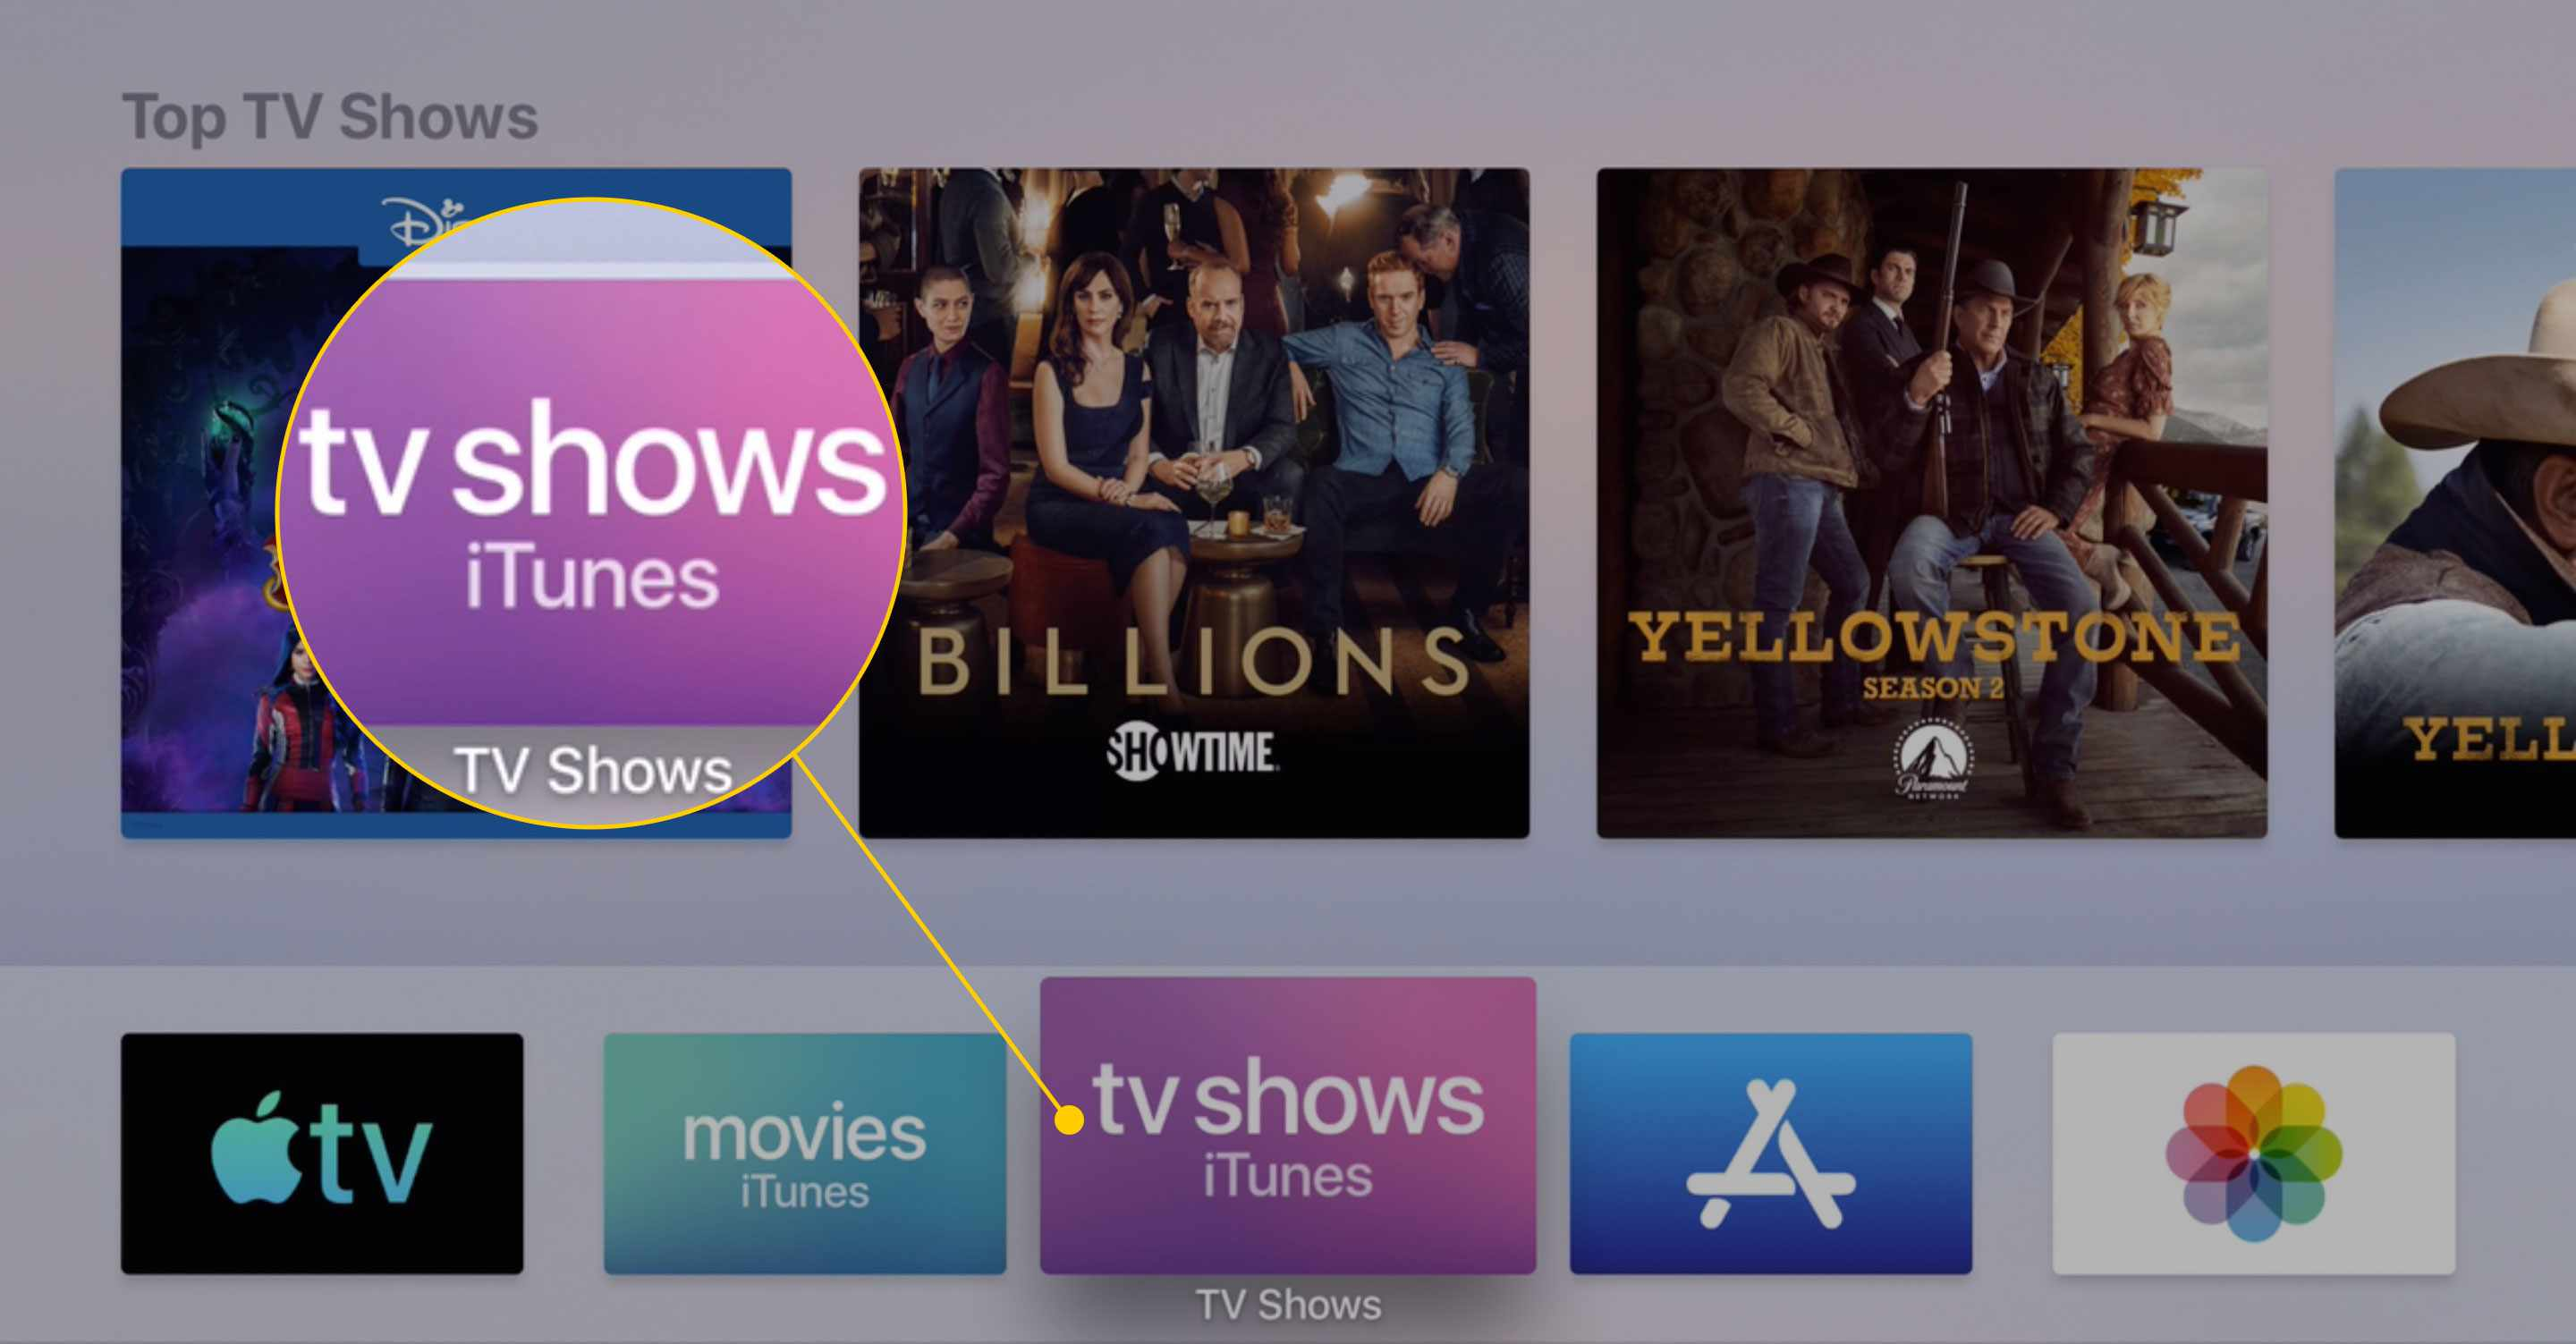 The home screen of an Apple TV with the TV Shows iTunes app highlighted